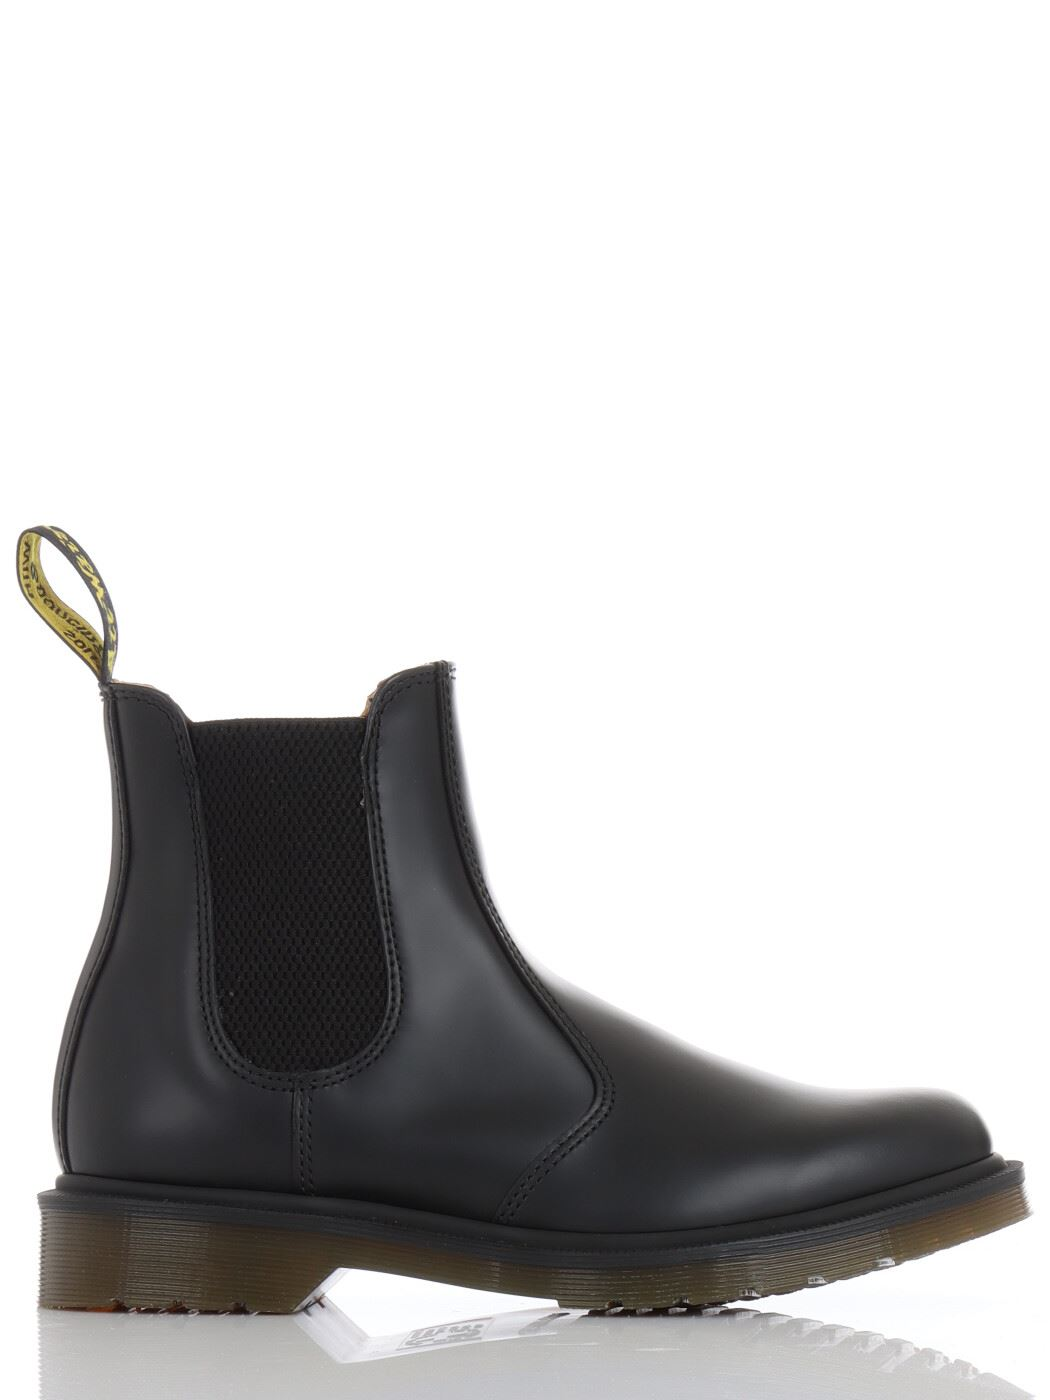 BEATELS DR.MARTENS CHELSEA SMOOTH